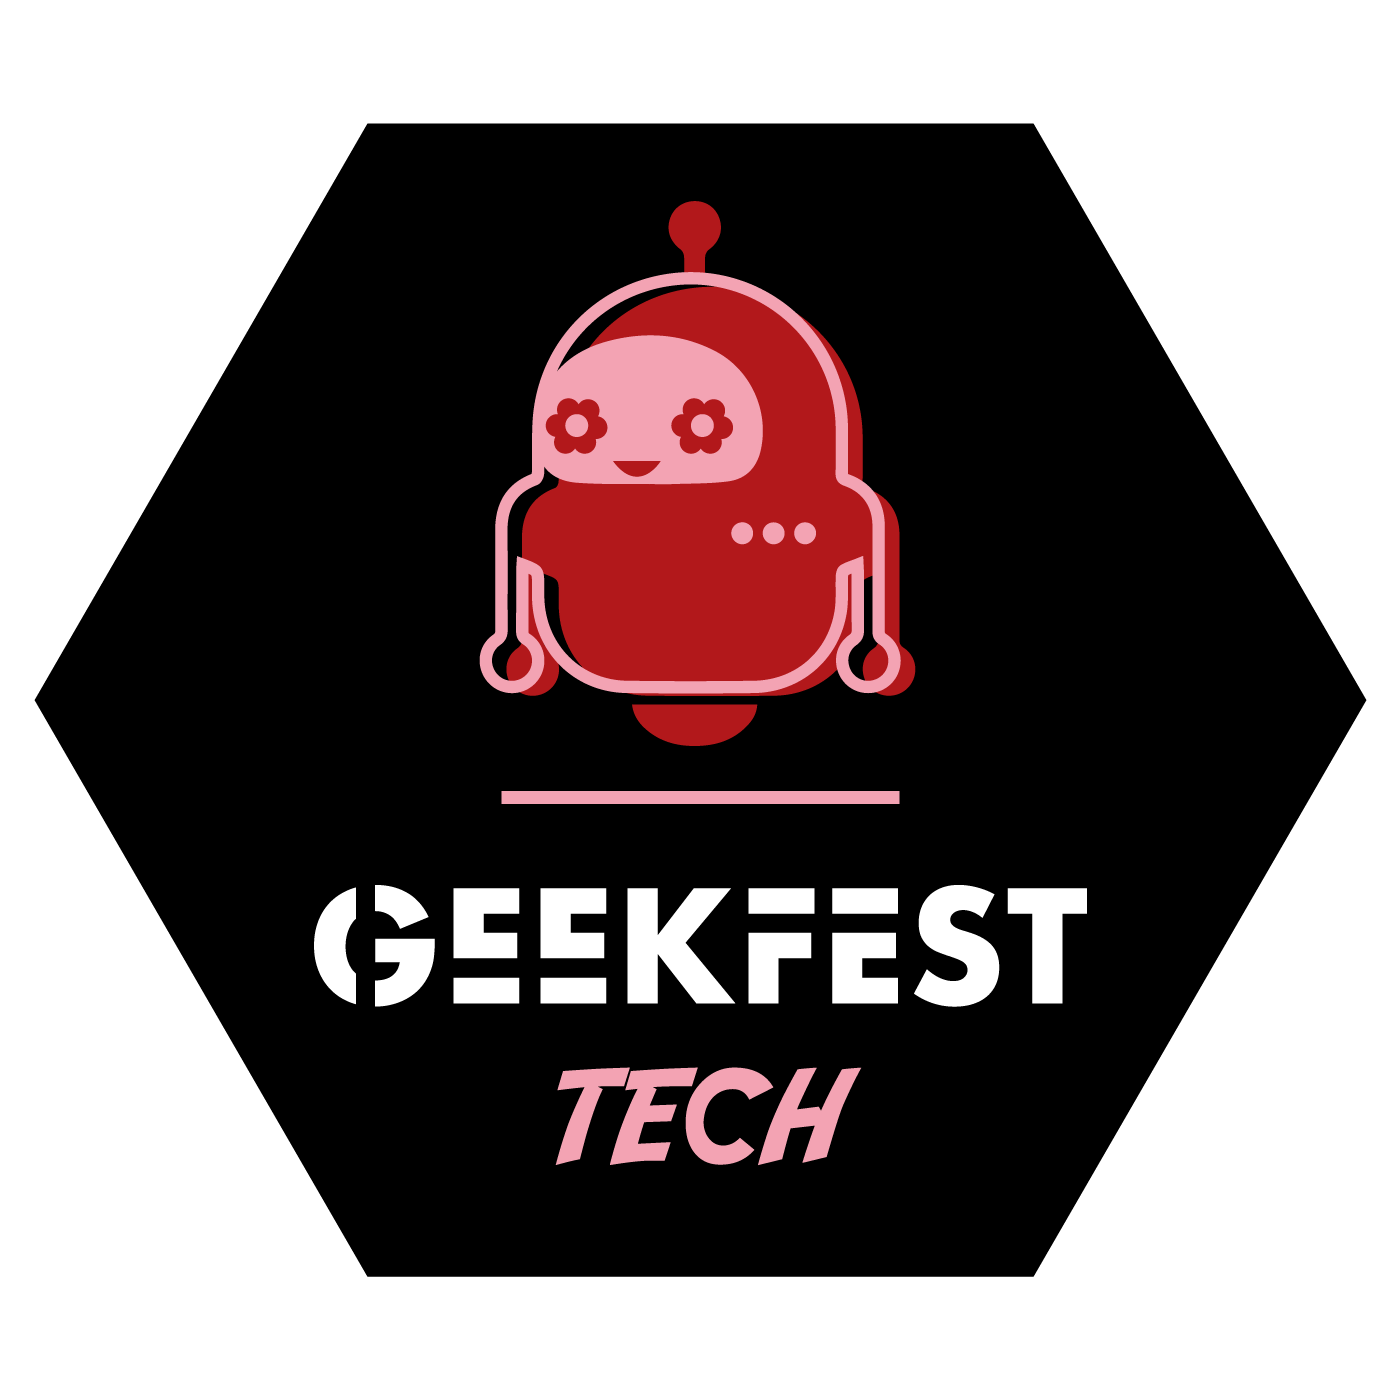 bordeaux-geekfest-label-tech